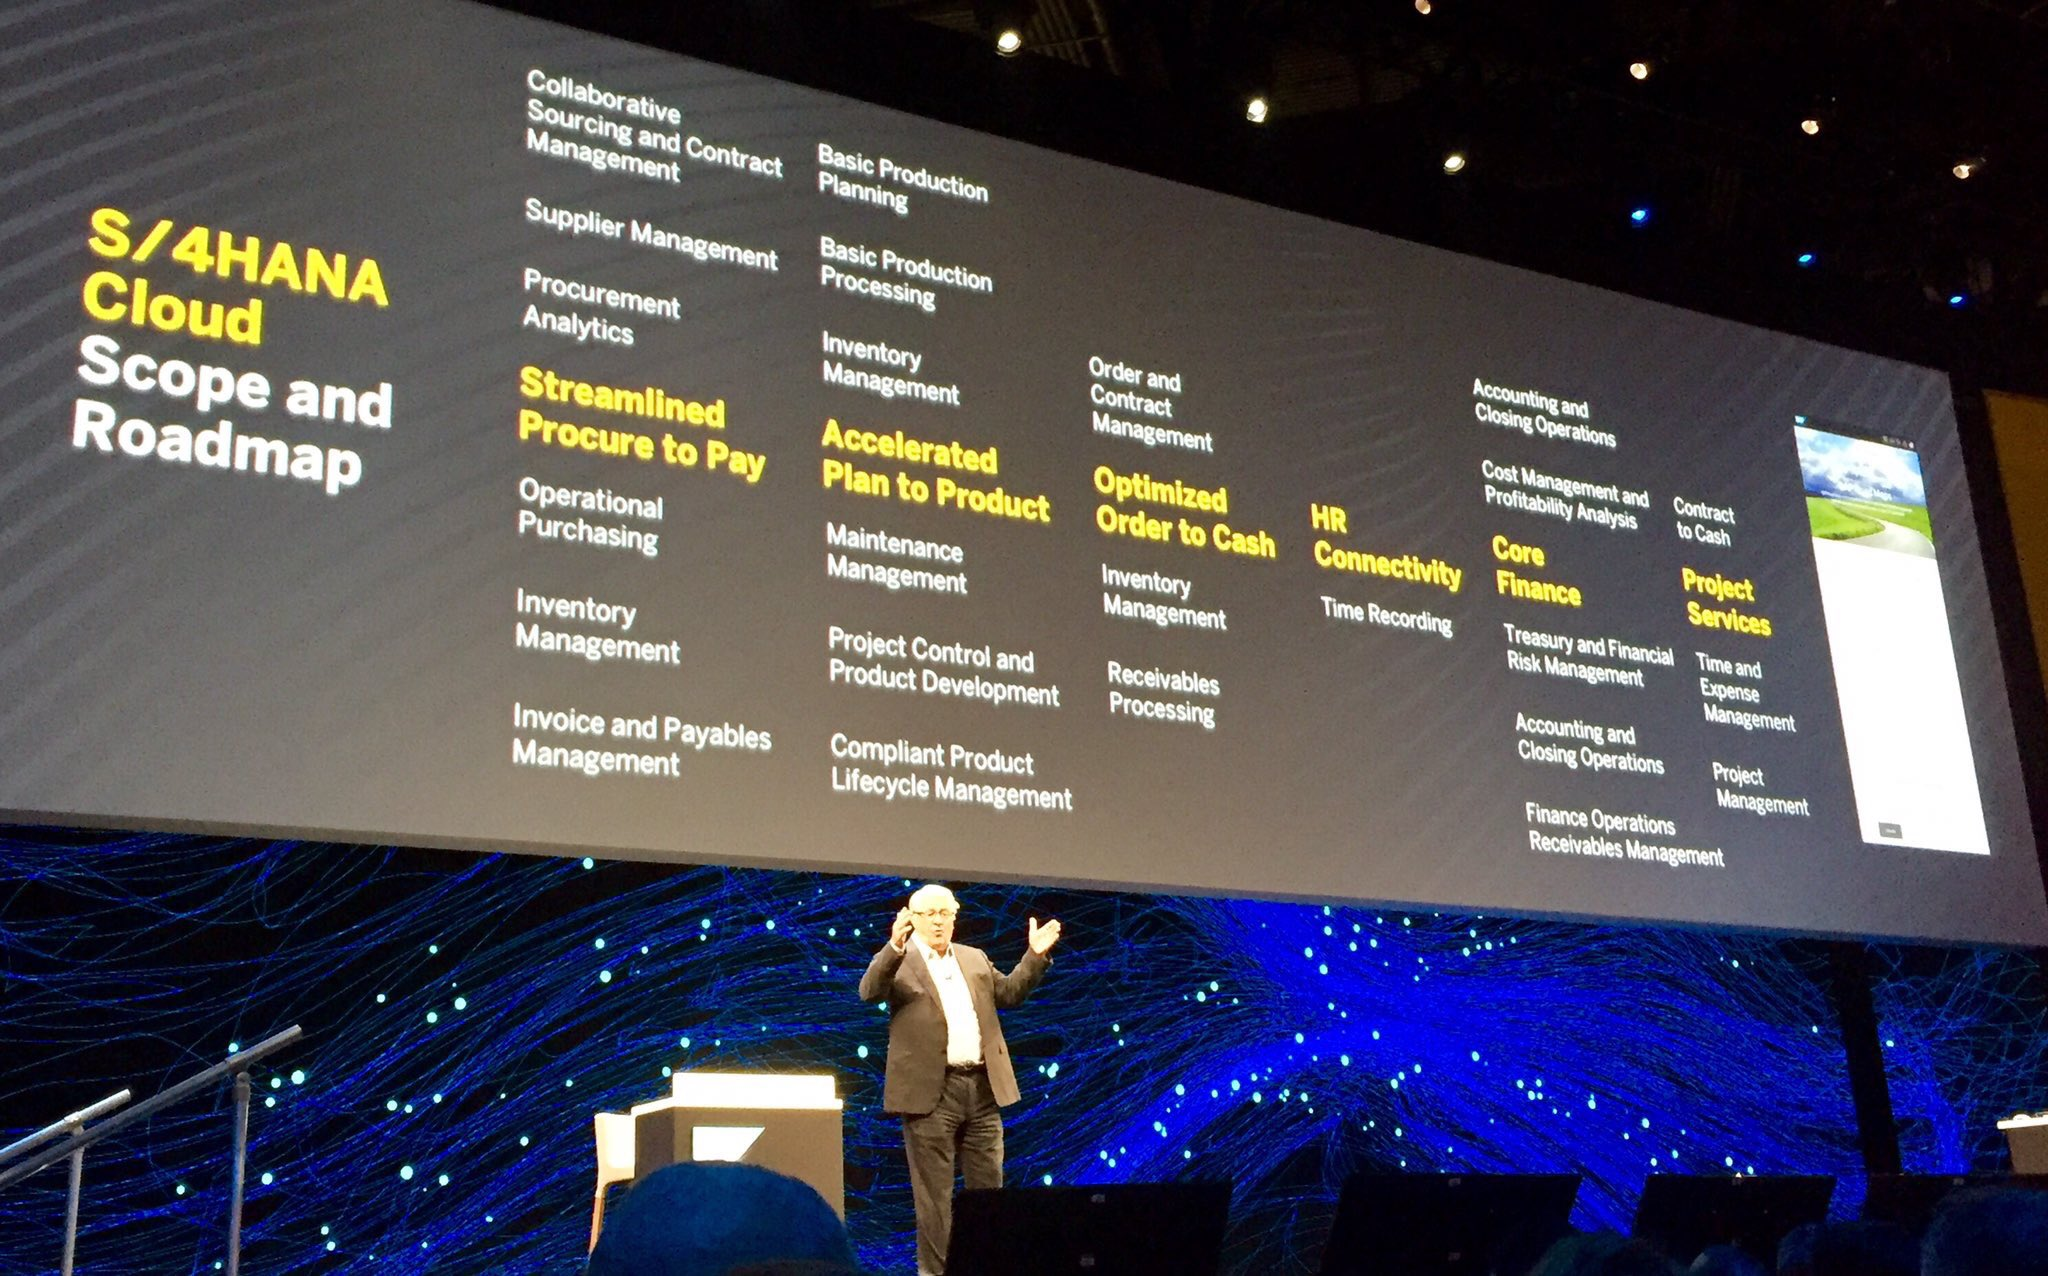 Wow, so according to Hasso, @sap spends 10% of their R&D budget to develop interfaces!  #SAPPHIRENOW @holgermu @rwang0 @LeukertB https://t.co/l7Dgr1FDTA